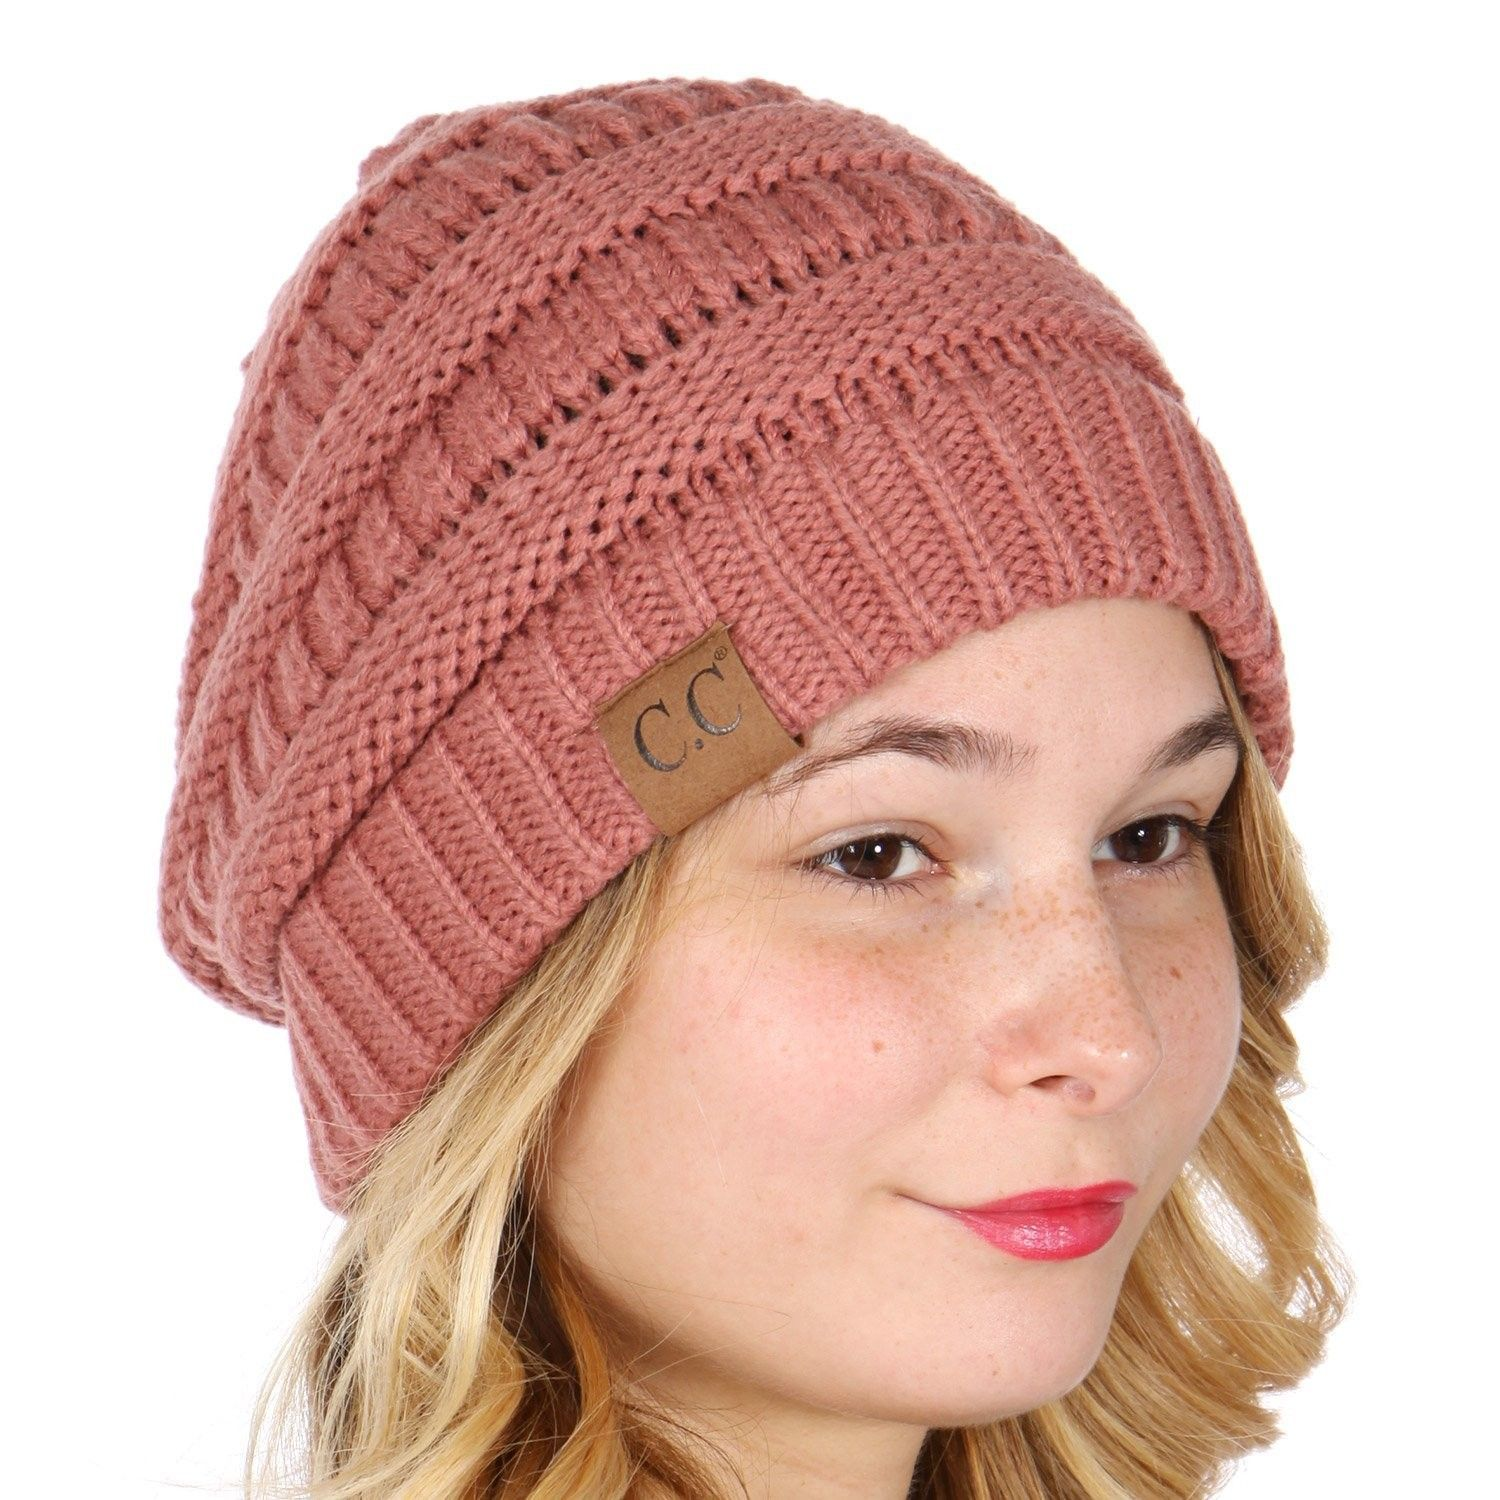 66e4325df21 C.C Unisex Soft Stretch Thick Slouchy Knit Oversized Beanie Cap Hat ...